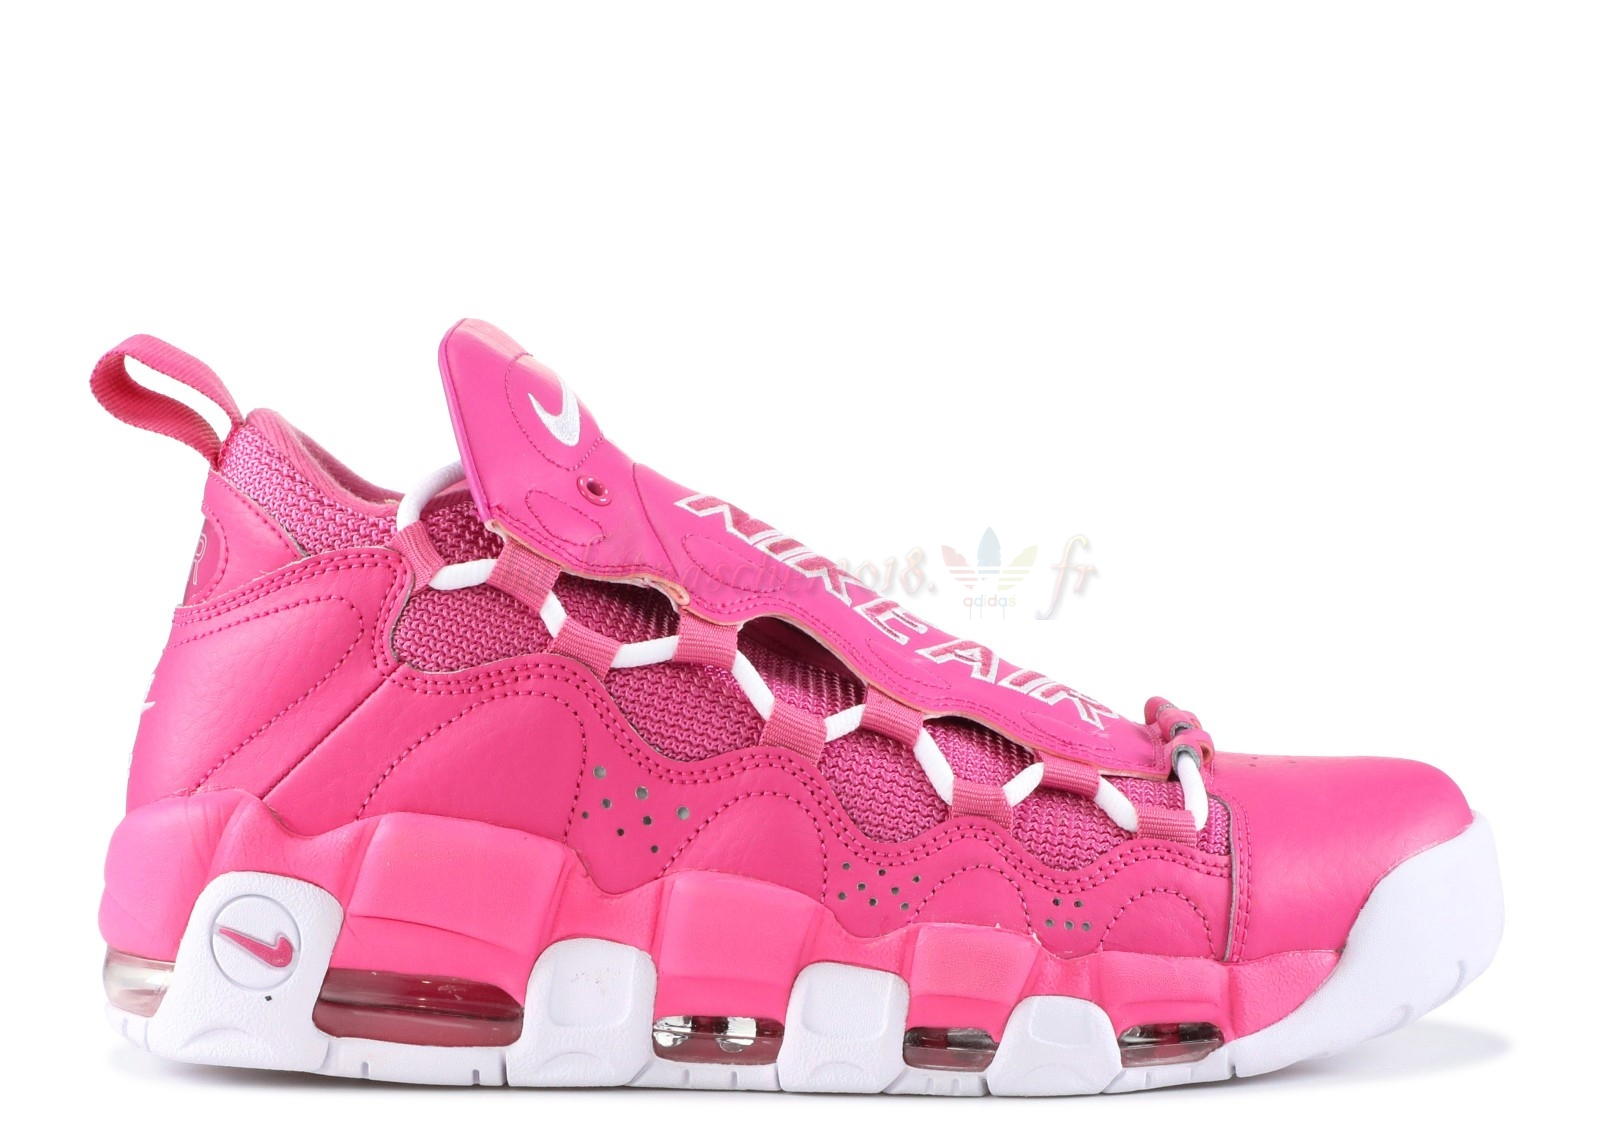 "Vente Chaude Chaussures De Basketball Homme Sneaker Room X Air More Money Qs ""Breast Cancer Awareness"" Rose Blanc (aj7383-600) Pas Cher"